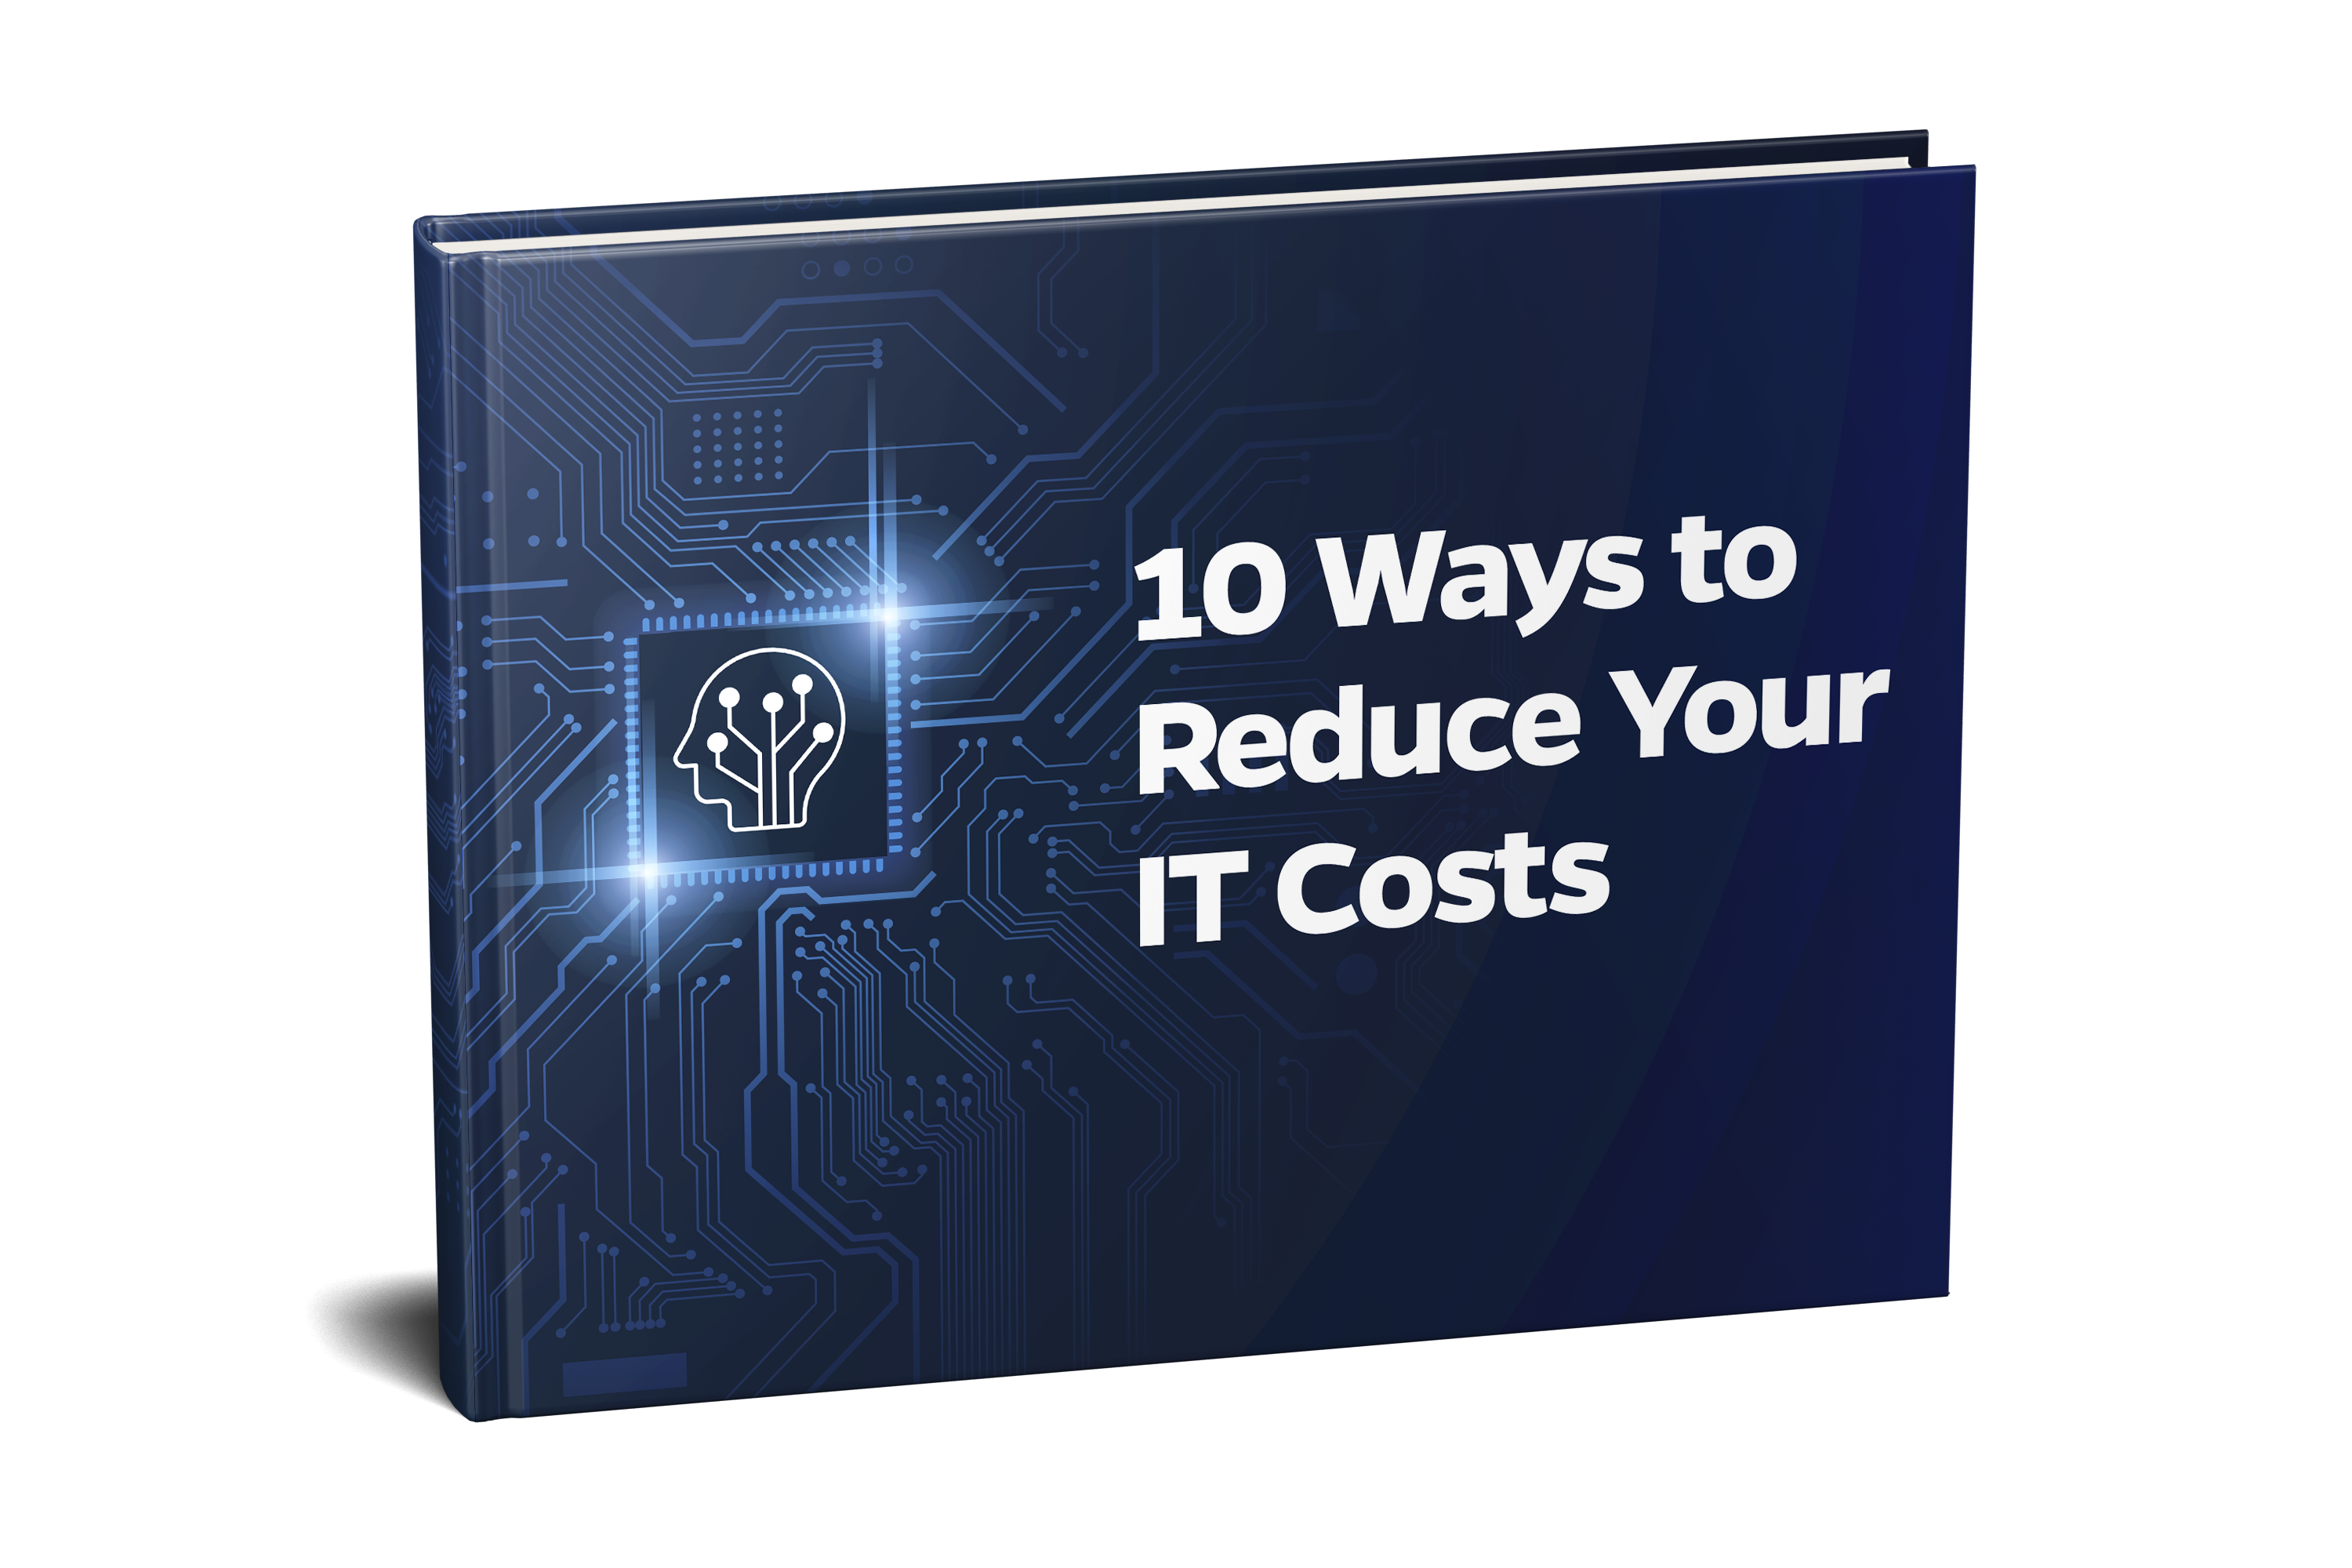 10 Ways to Reduce Your IT Costs